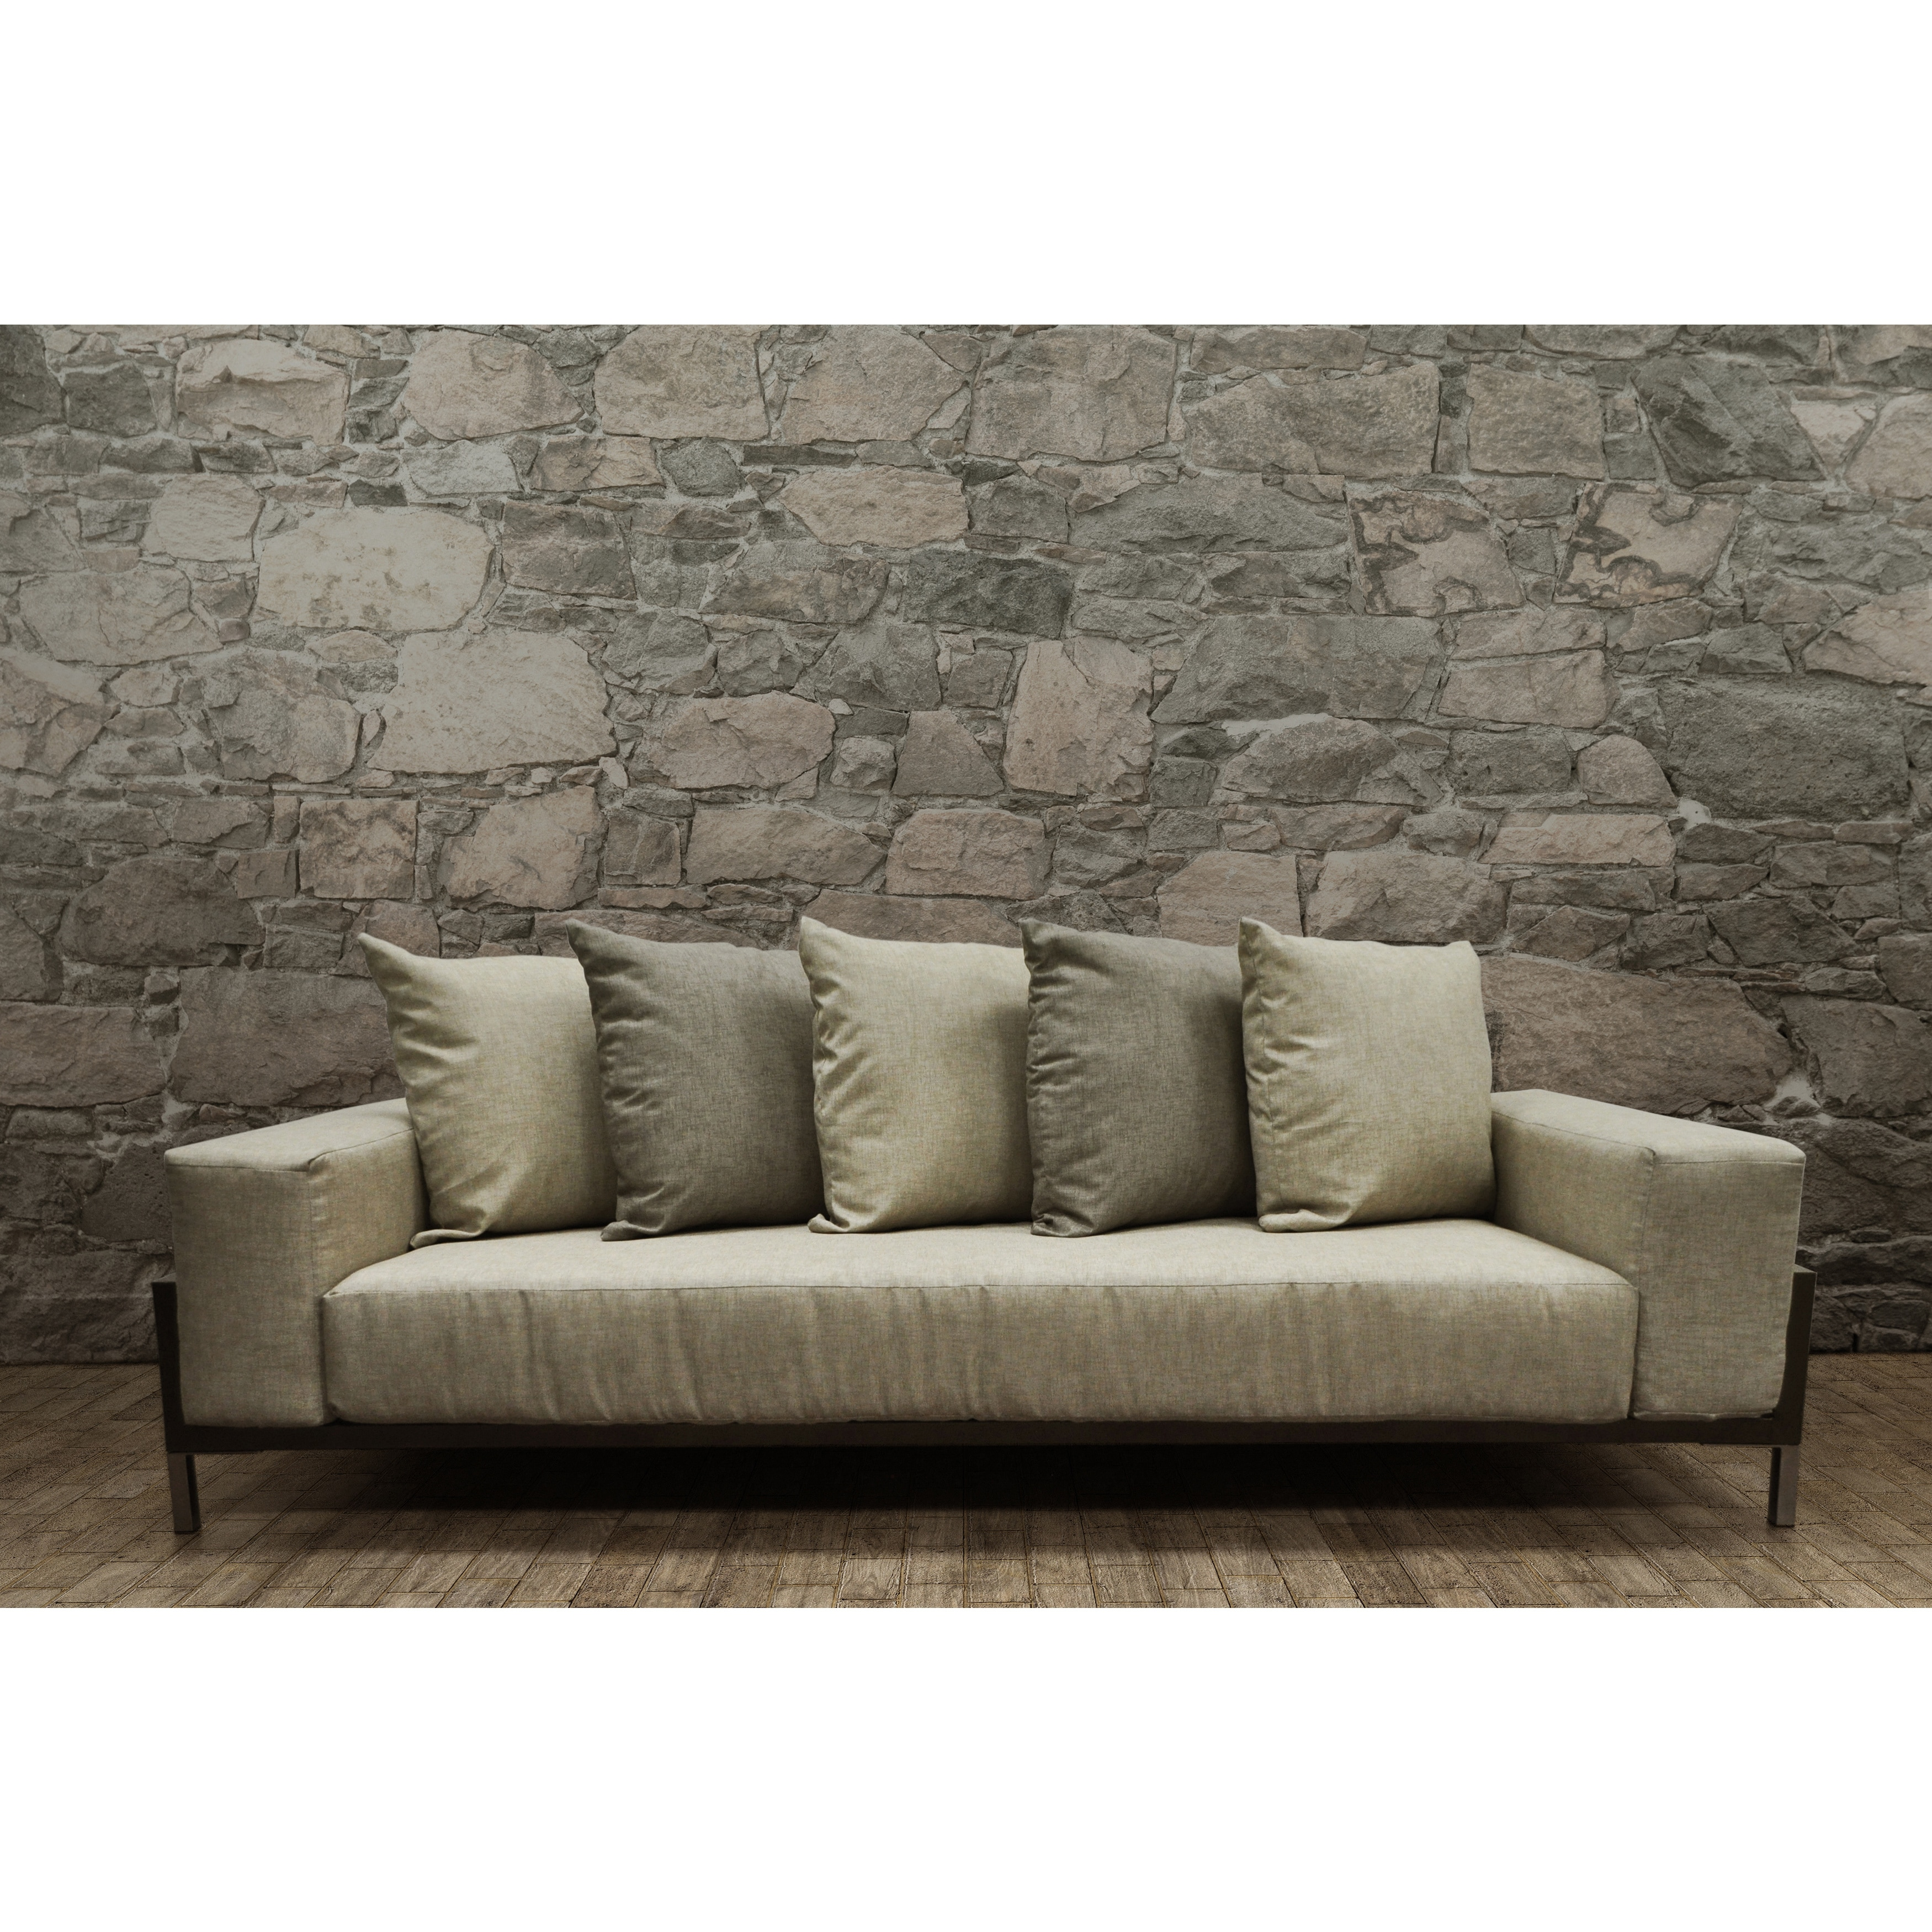 room inch couches couch of reviews size extra sectional set sofa living overstuffed plush oversized furniture best brands ventura zgallerie full deep sofas seated